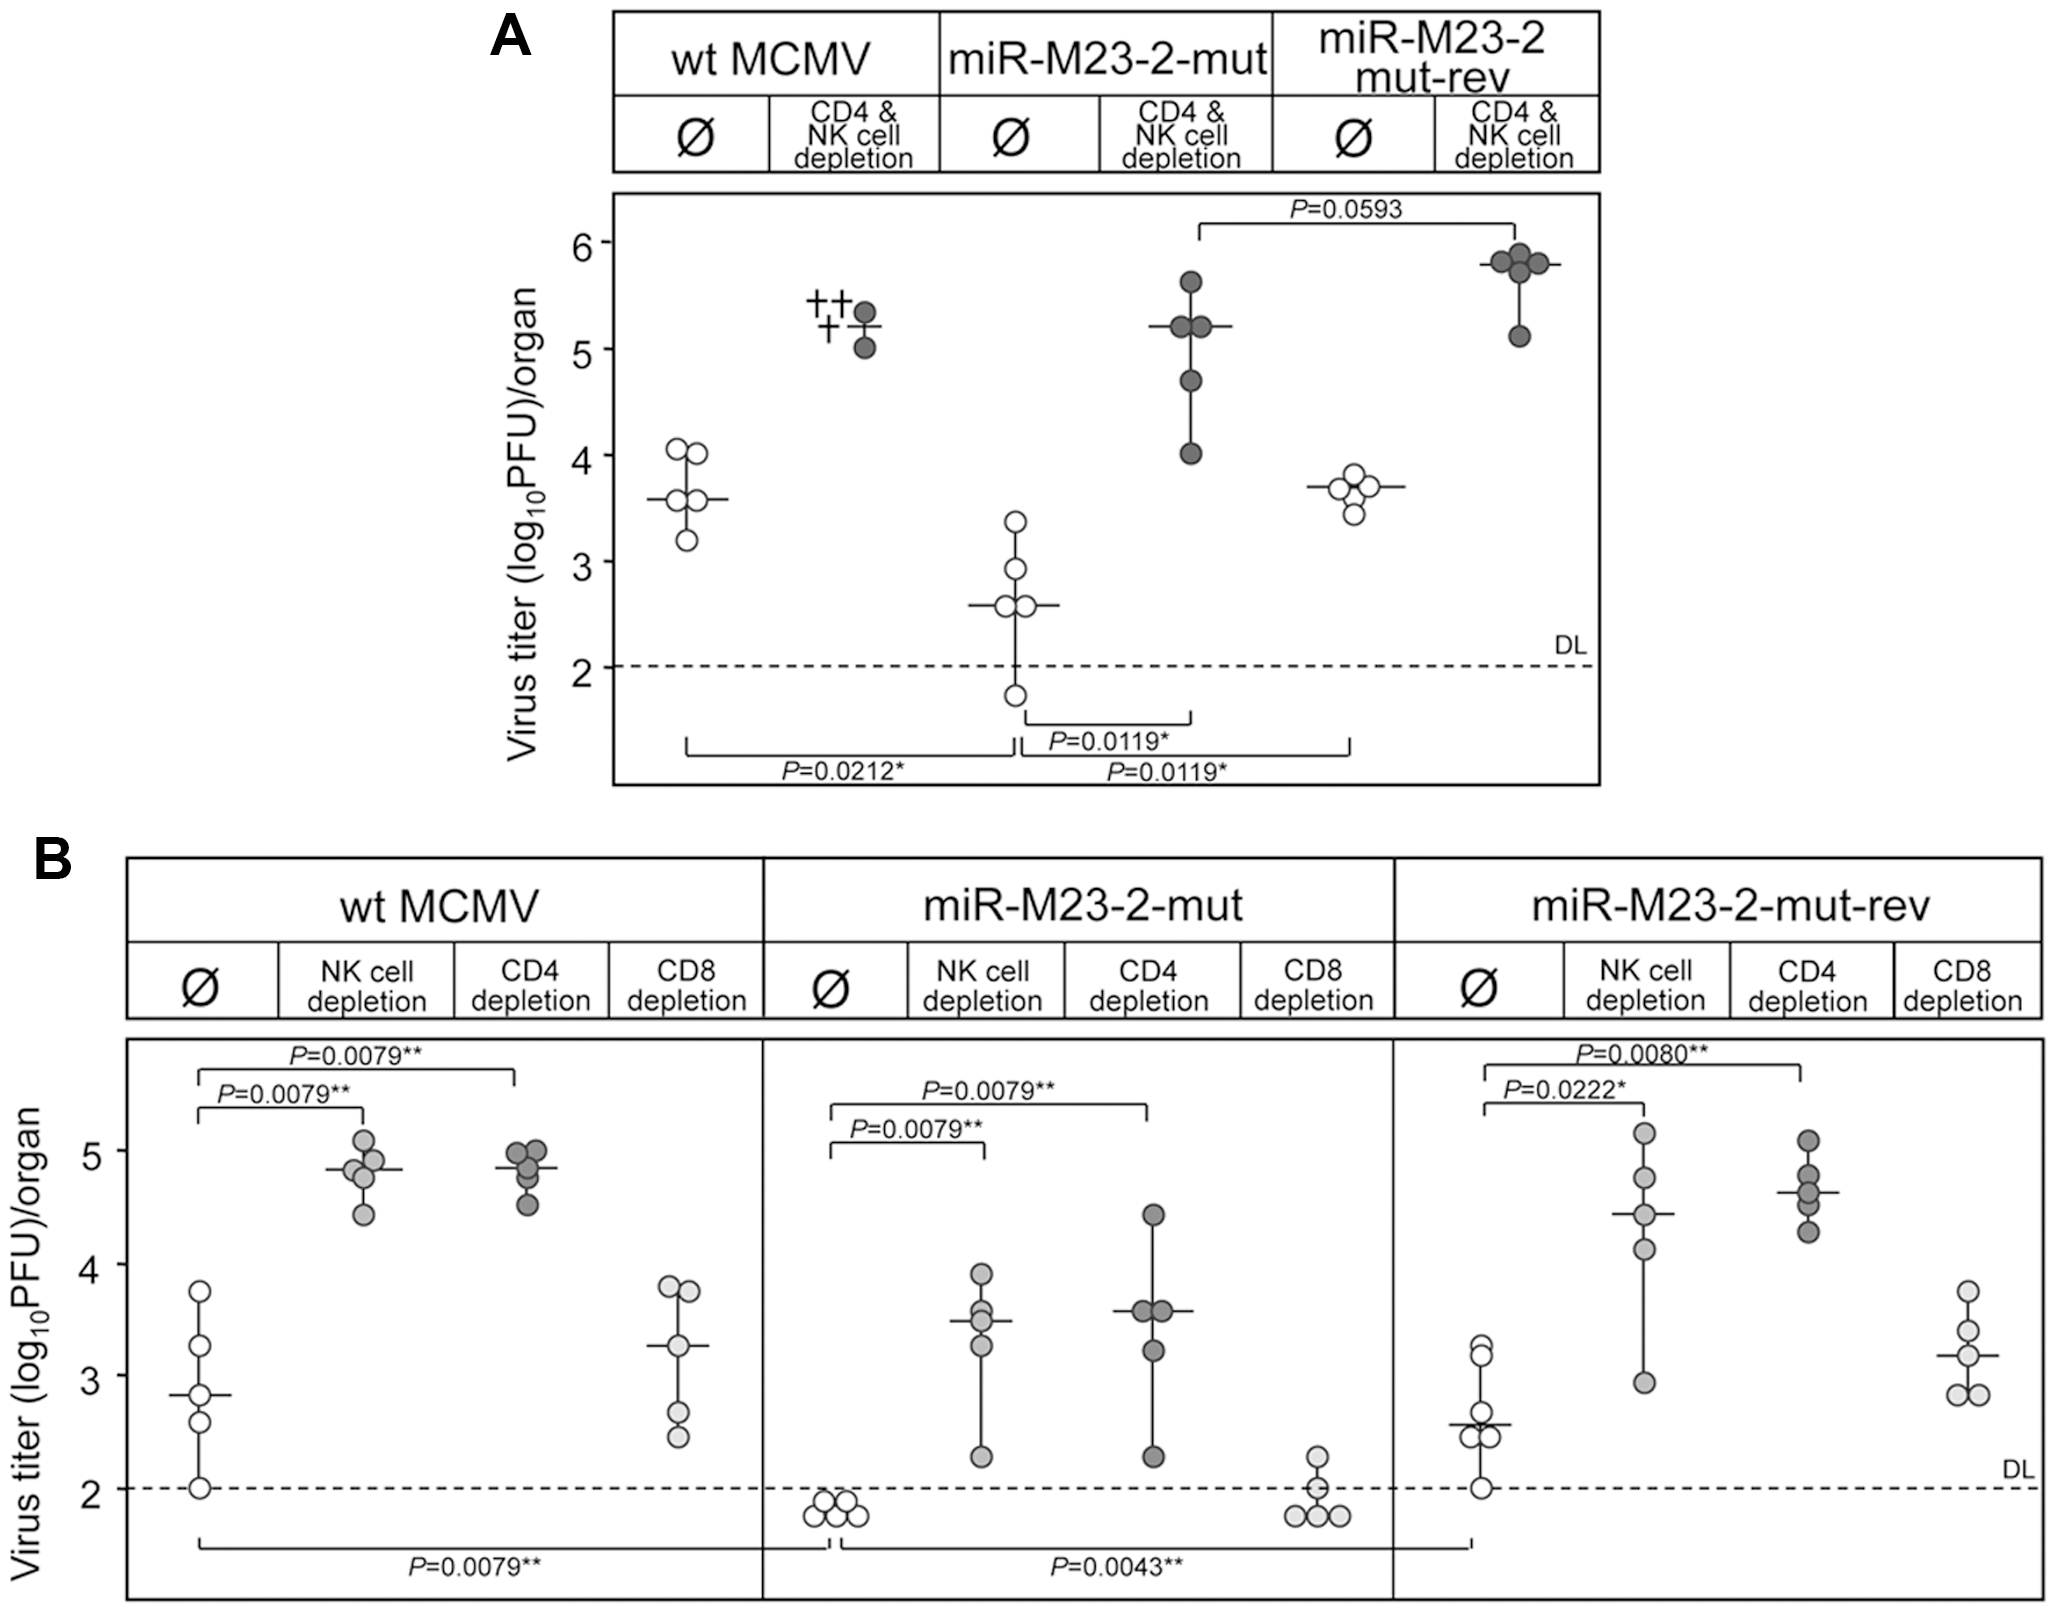 Reversion of the miRNA mutant phenotype by immune cells depletion.